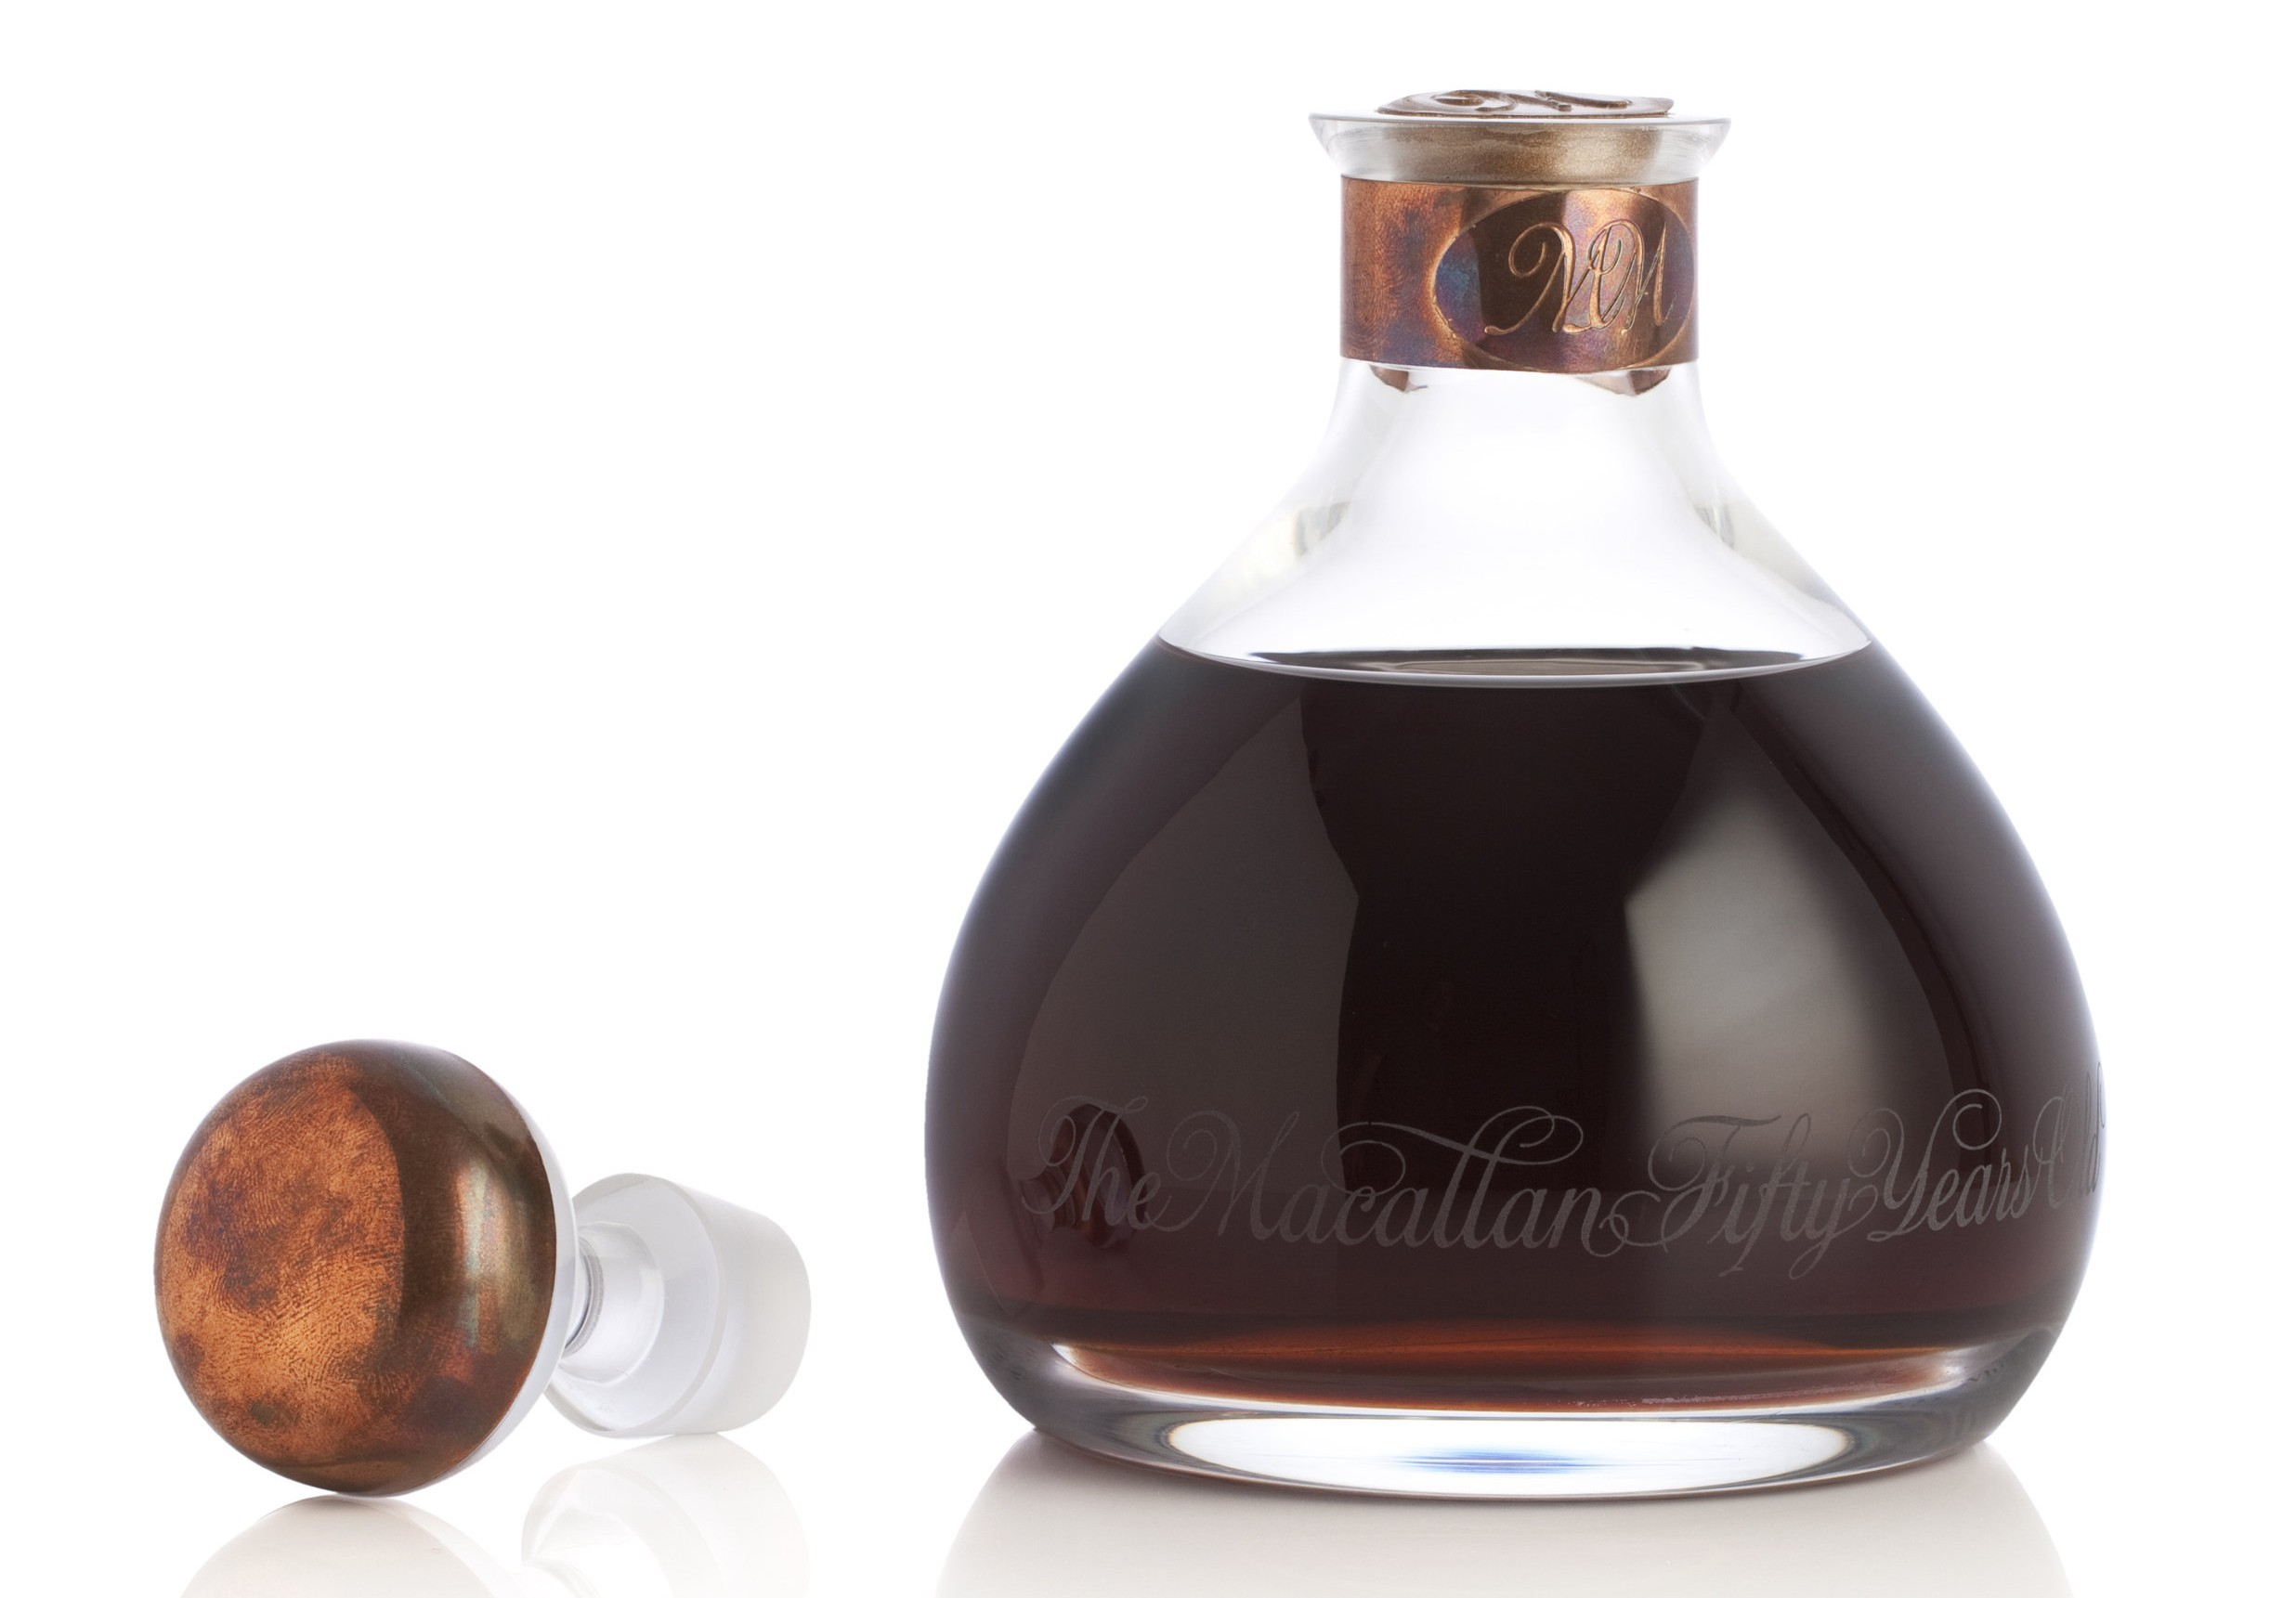 The Macallan Millennium Decanter